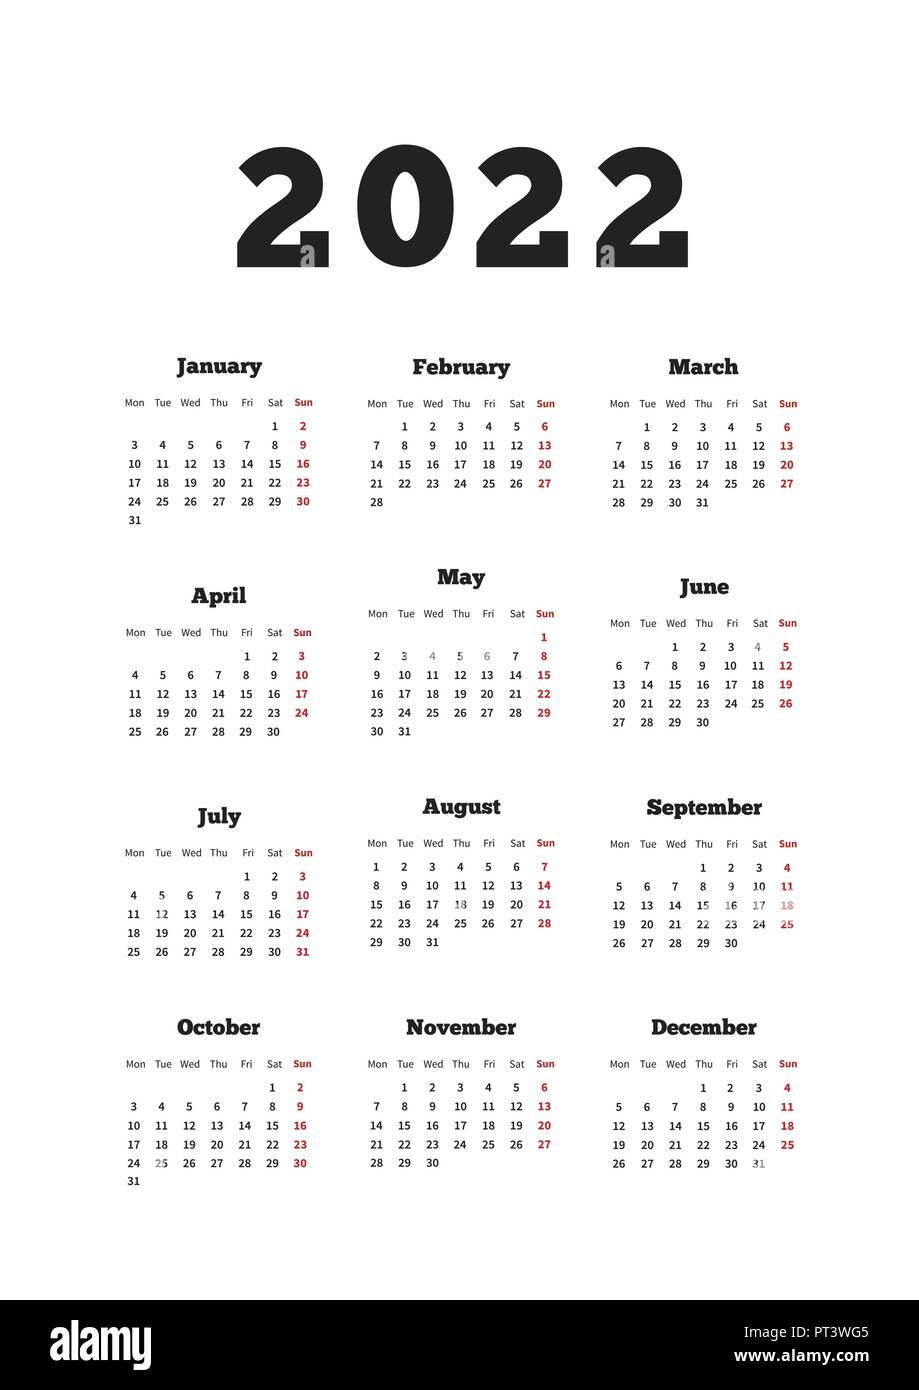 2022 Calendar Monday Start.Calendar On 2022 Year With Week Starting From Monday A4 Size Vertical Sheet On White Stock Vector Image Art Alamy